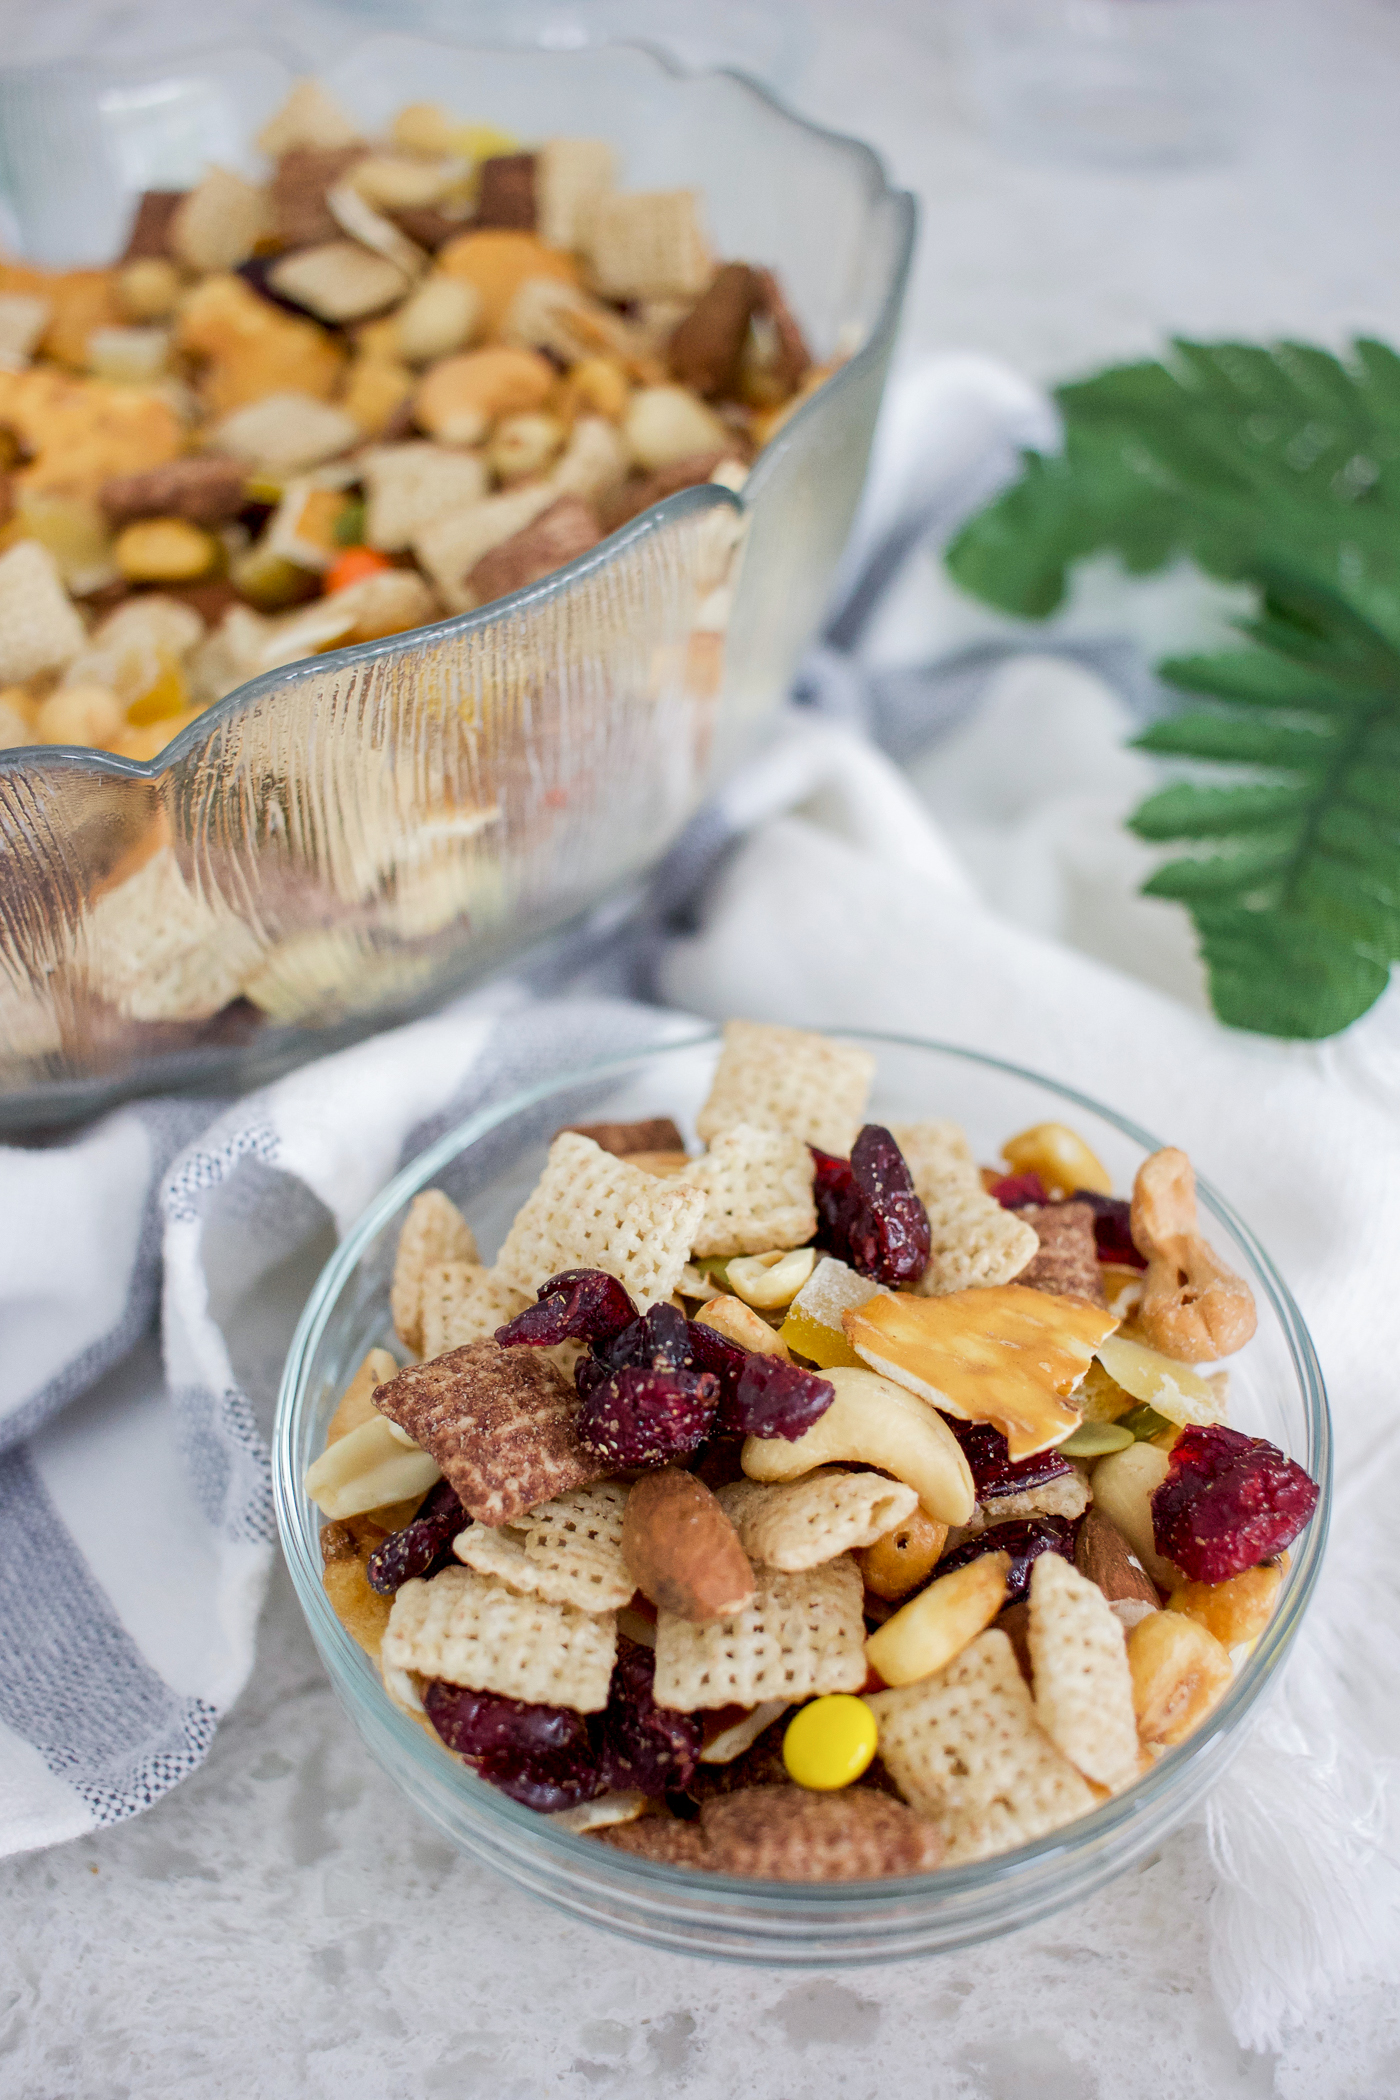 Easy camping snack to make yourself is trail mix